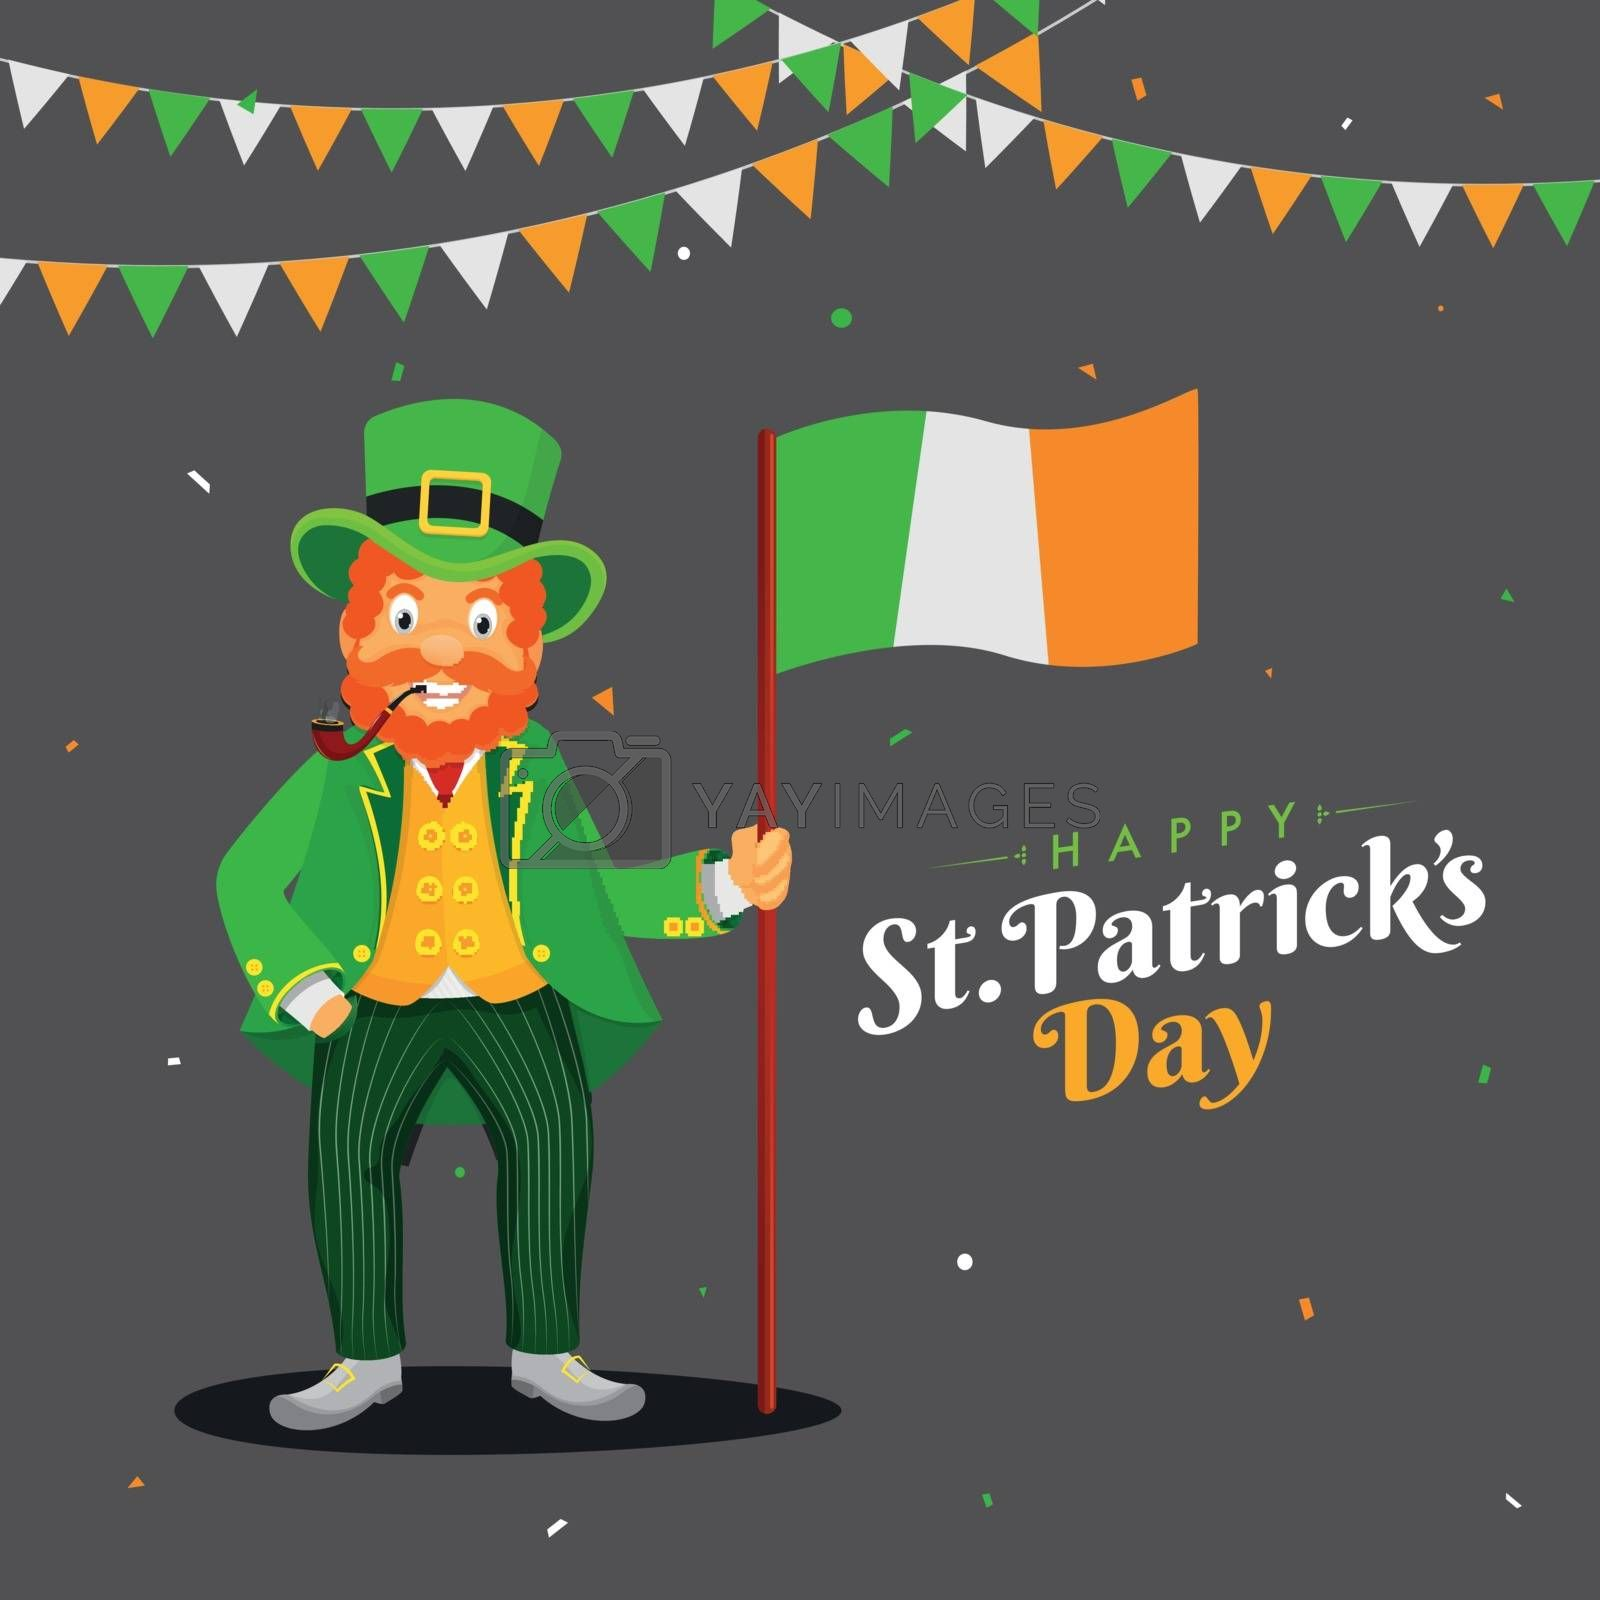 Royalty free image of Happy St. Patrick's Day celebration banner or poster design with by aispl